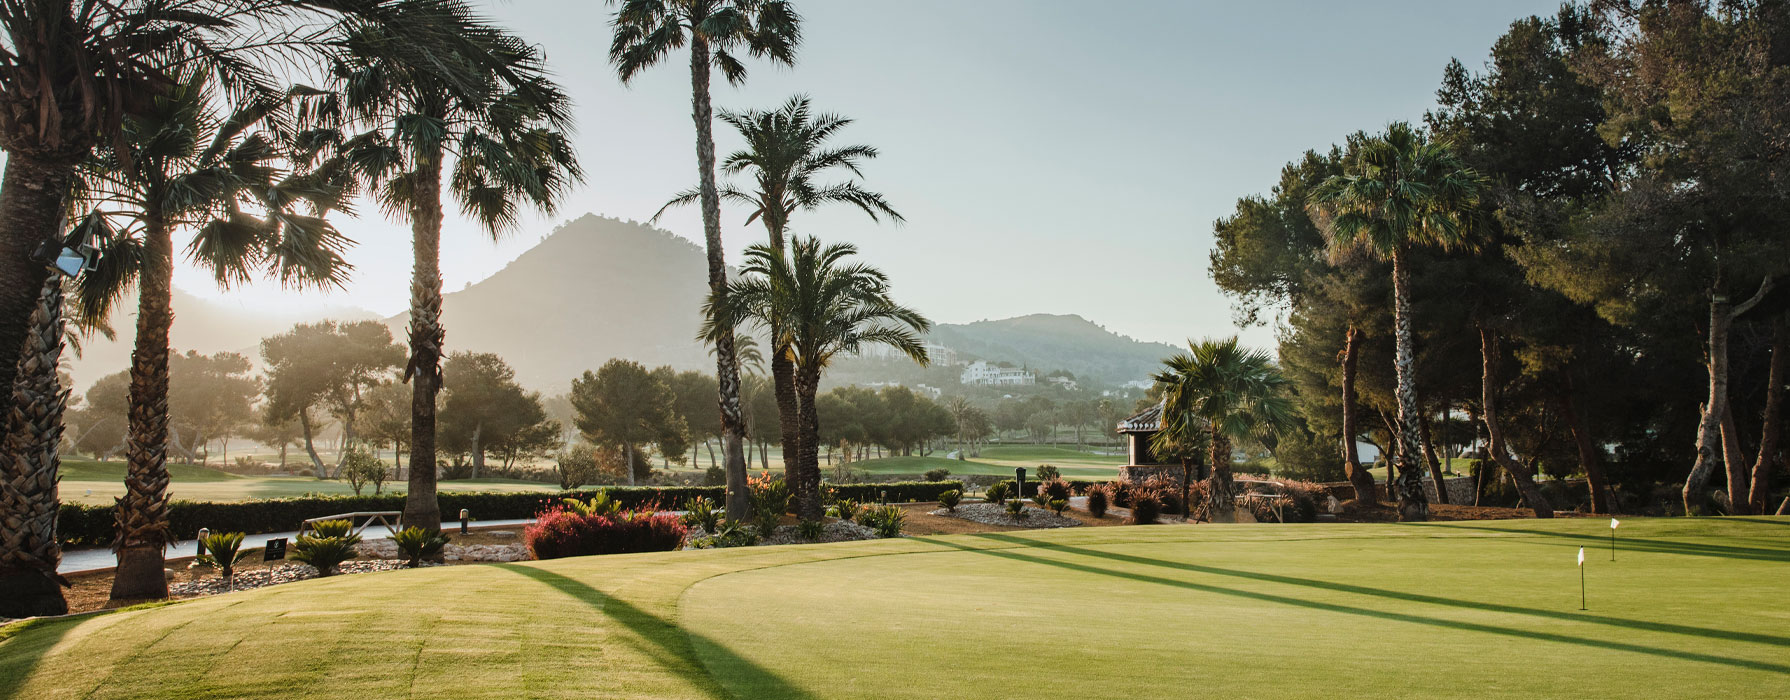 La Manga Club, golf